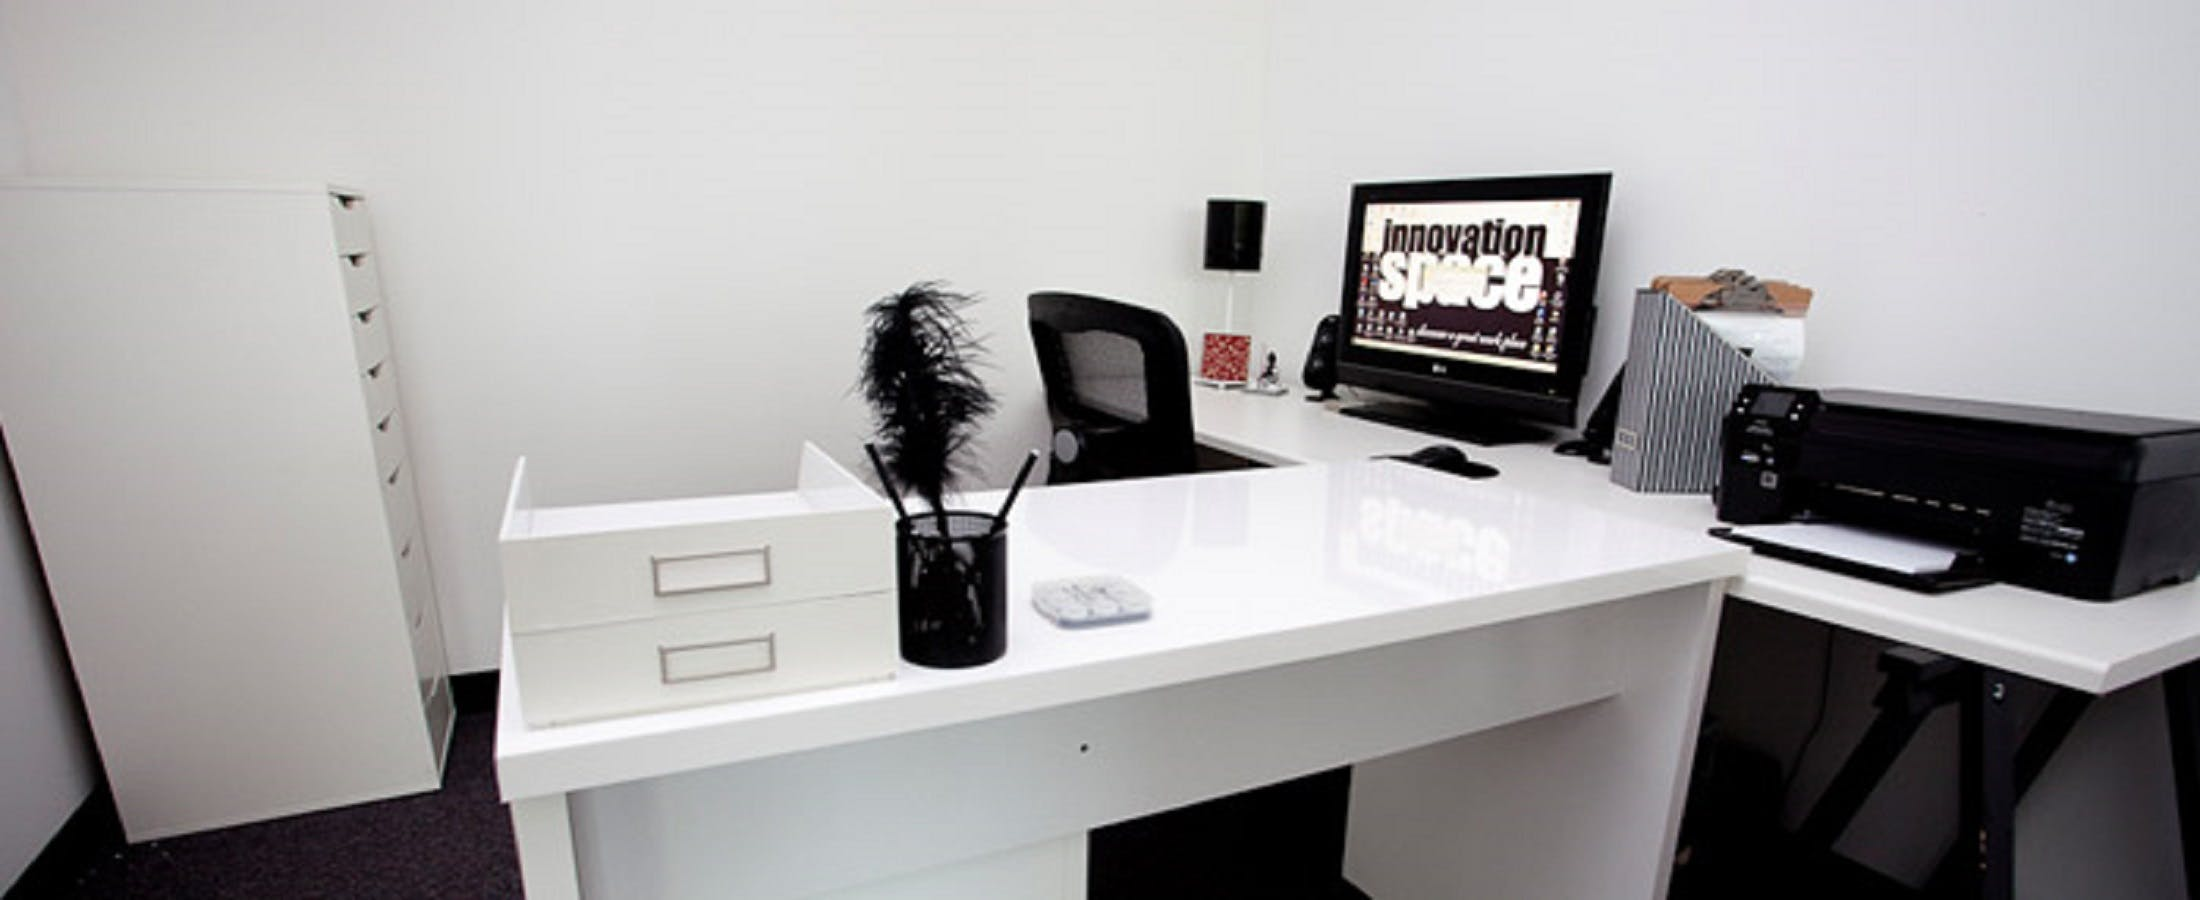 Hot desk at Innovation Space, image 1